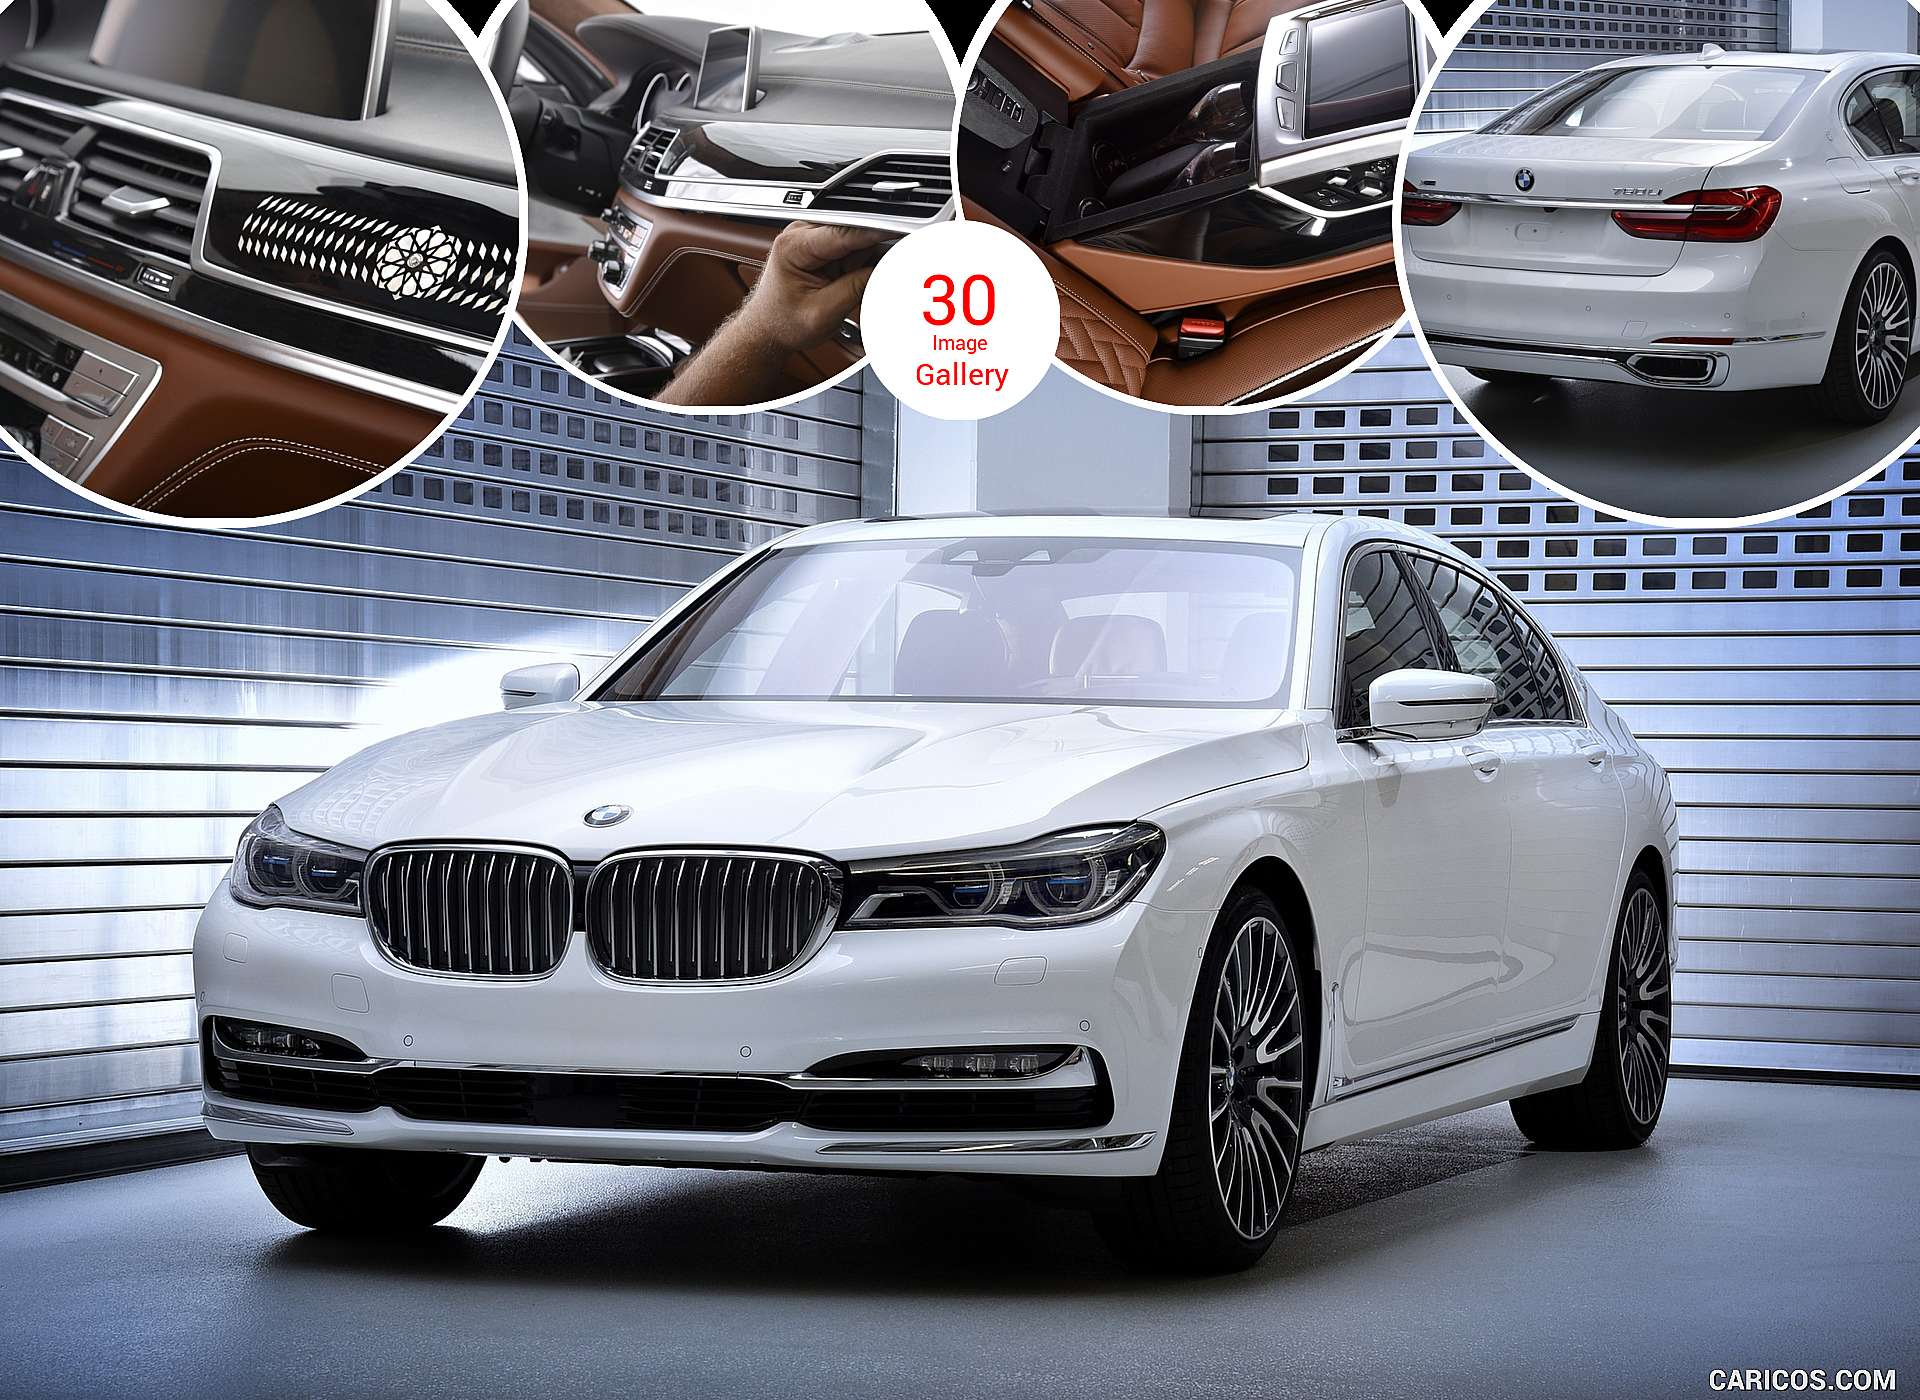 2016 BMW 750Li Solitaire and Master Class Edition